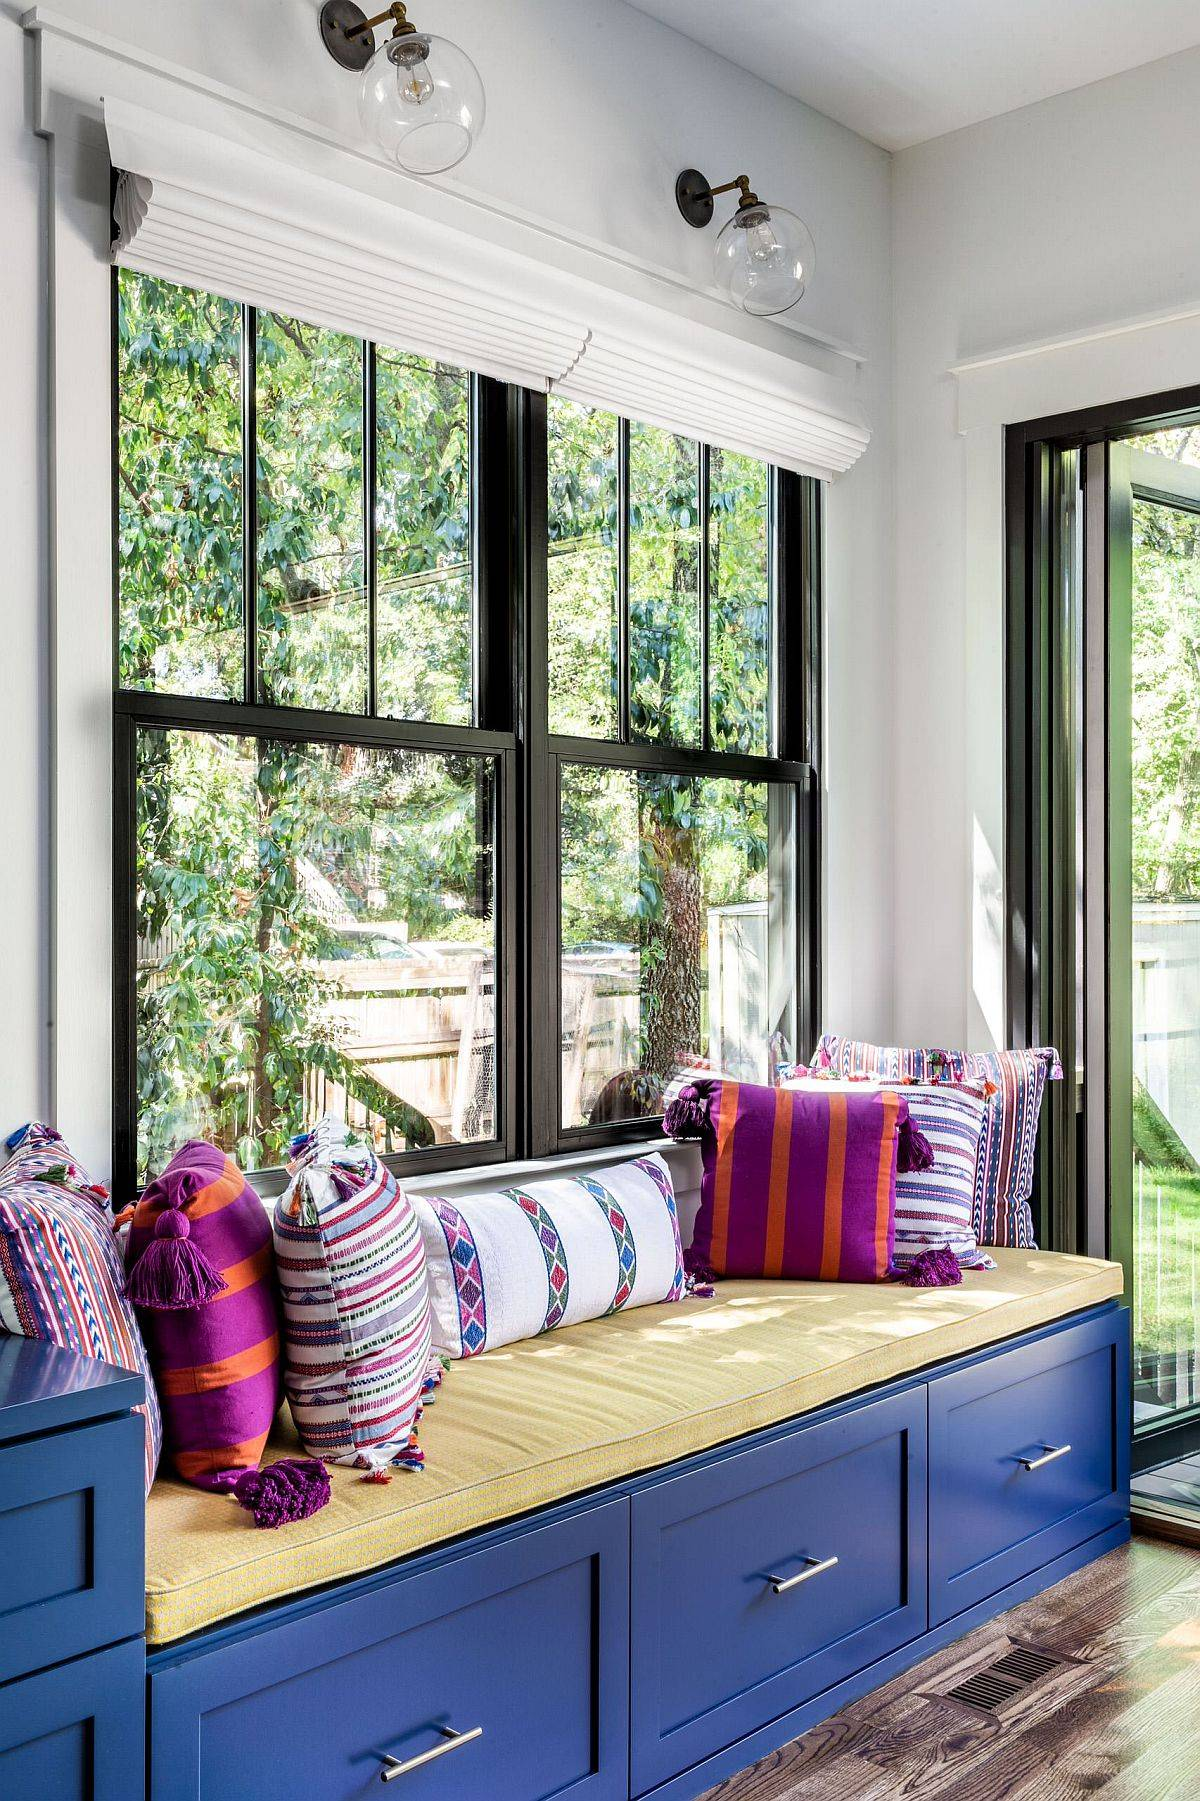 Tiny-built-in-bench-with-blue-drawers-and-a-comfortable-sitting-space-that-overlooks-the-garden-24307